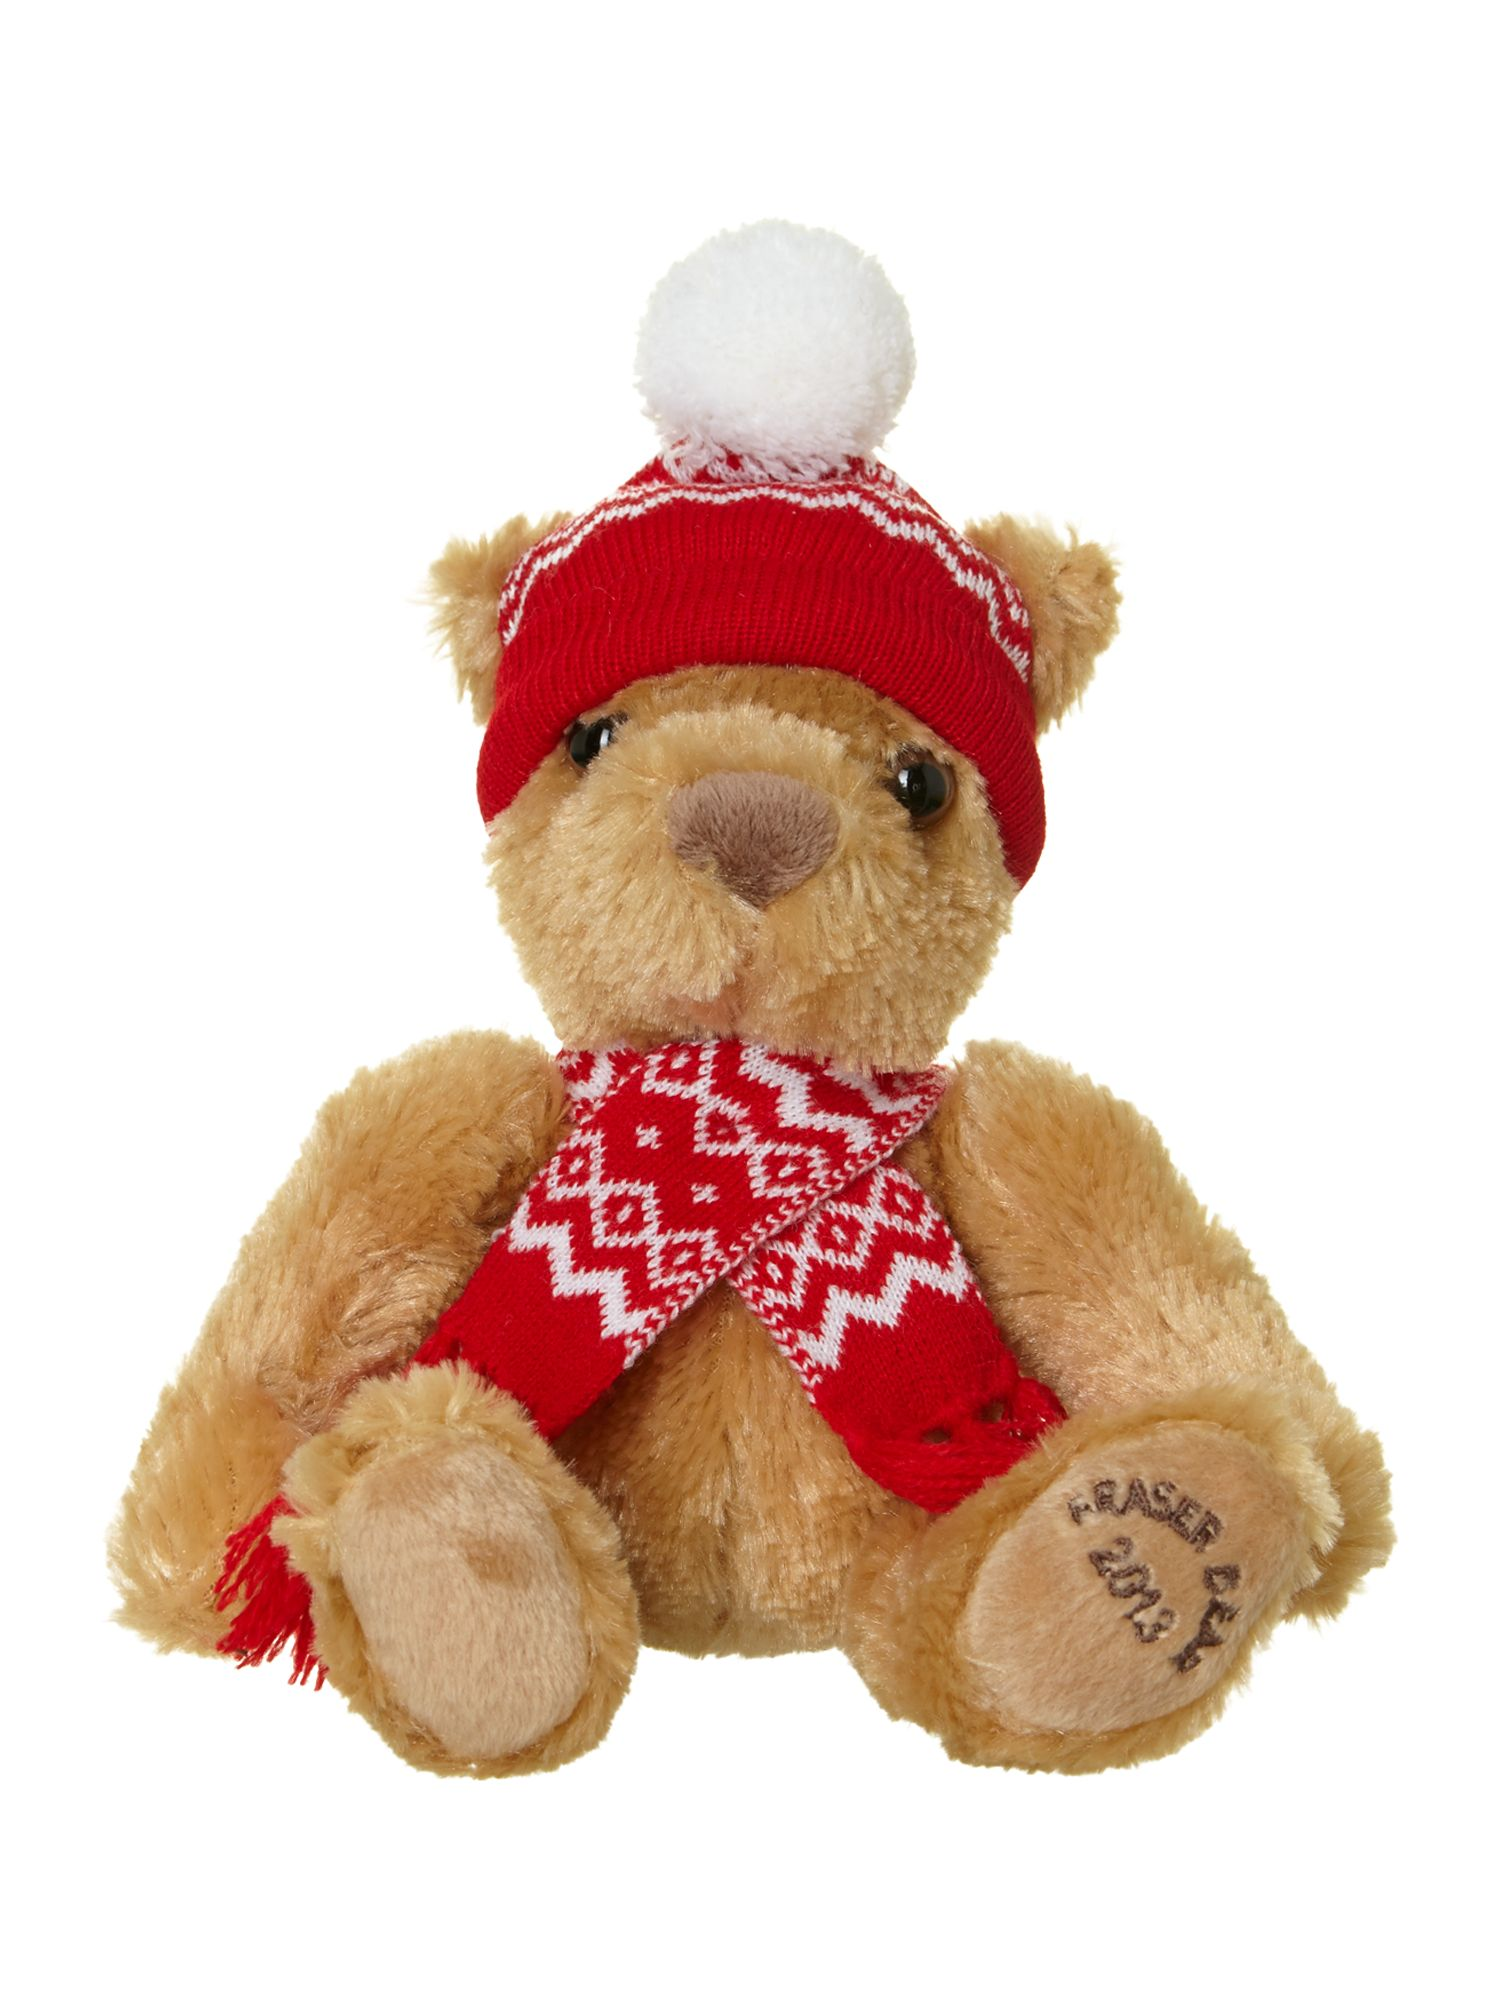 6 inch Fraser bear with hat and scarf